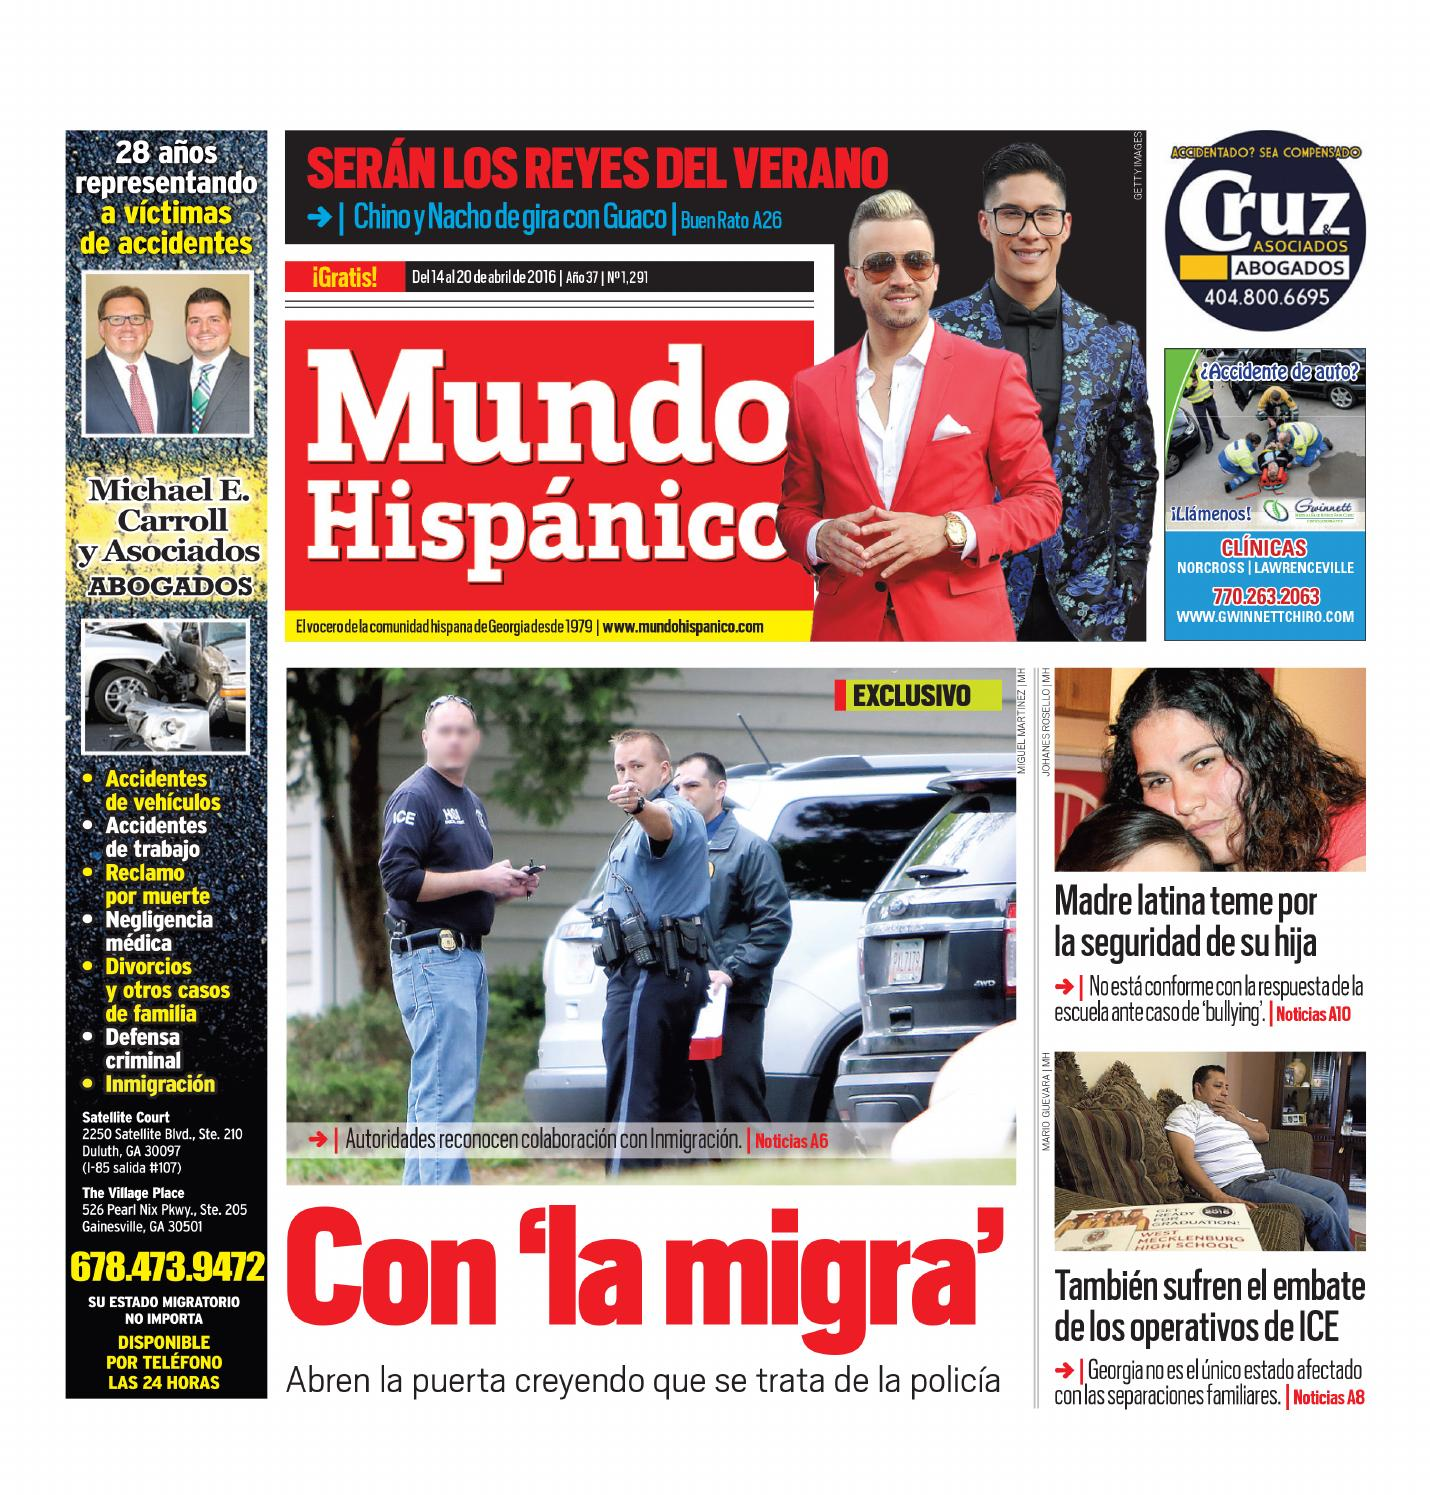 Mund 04142016 mundo a1 by MUNDO HISPANICO - issuu